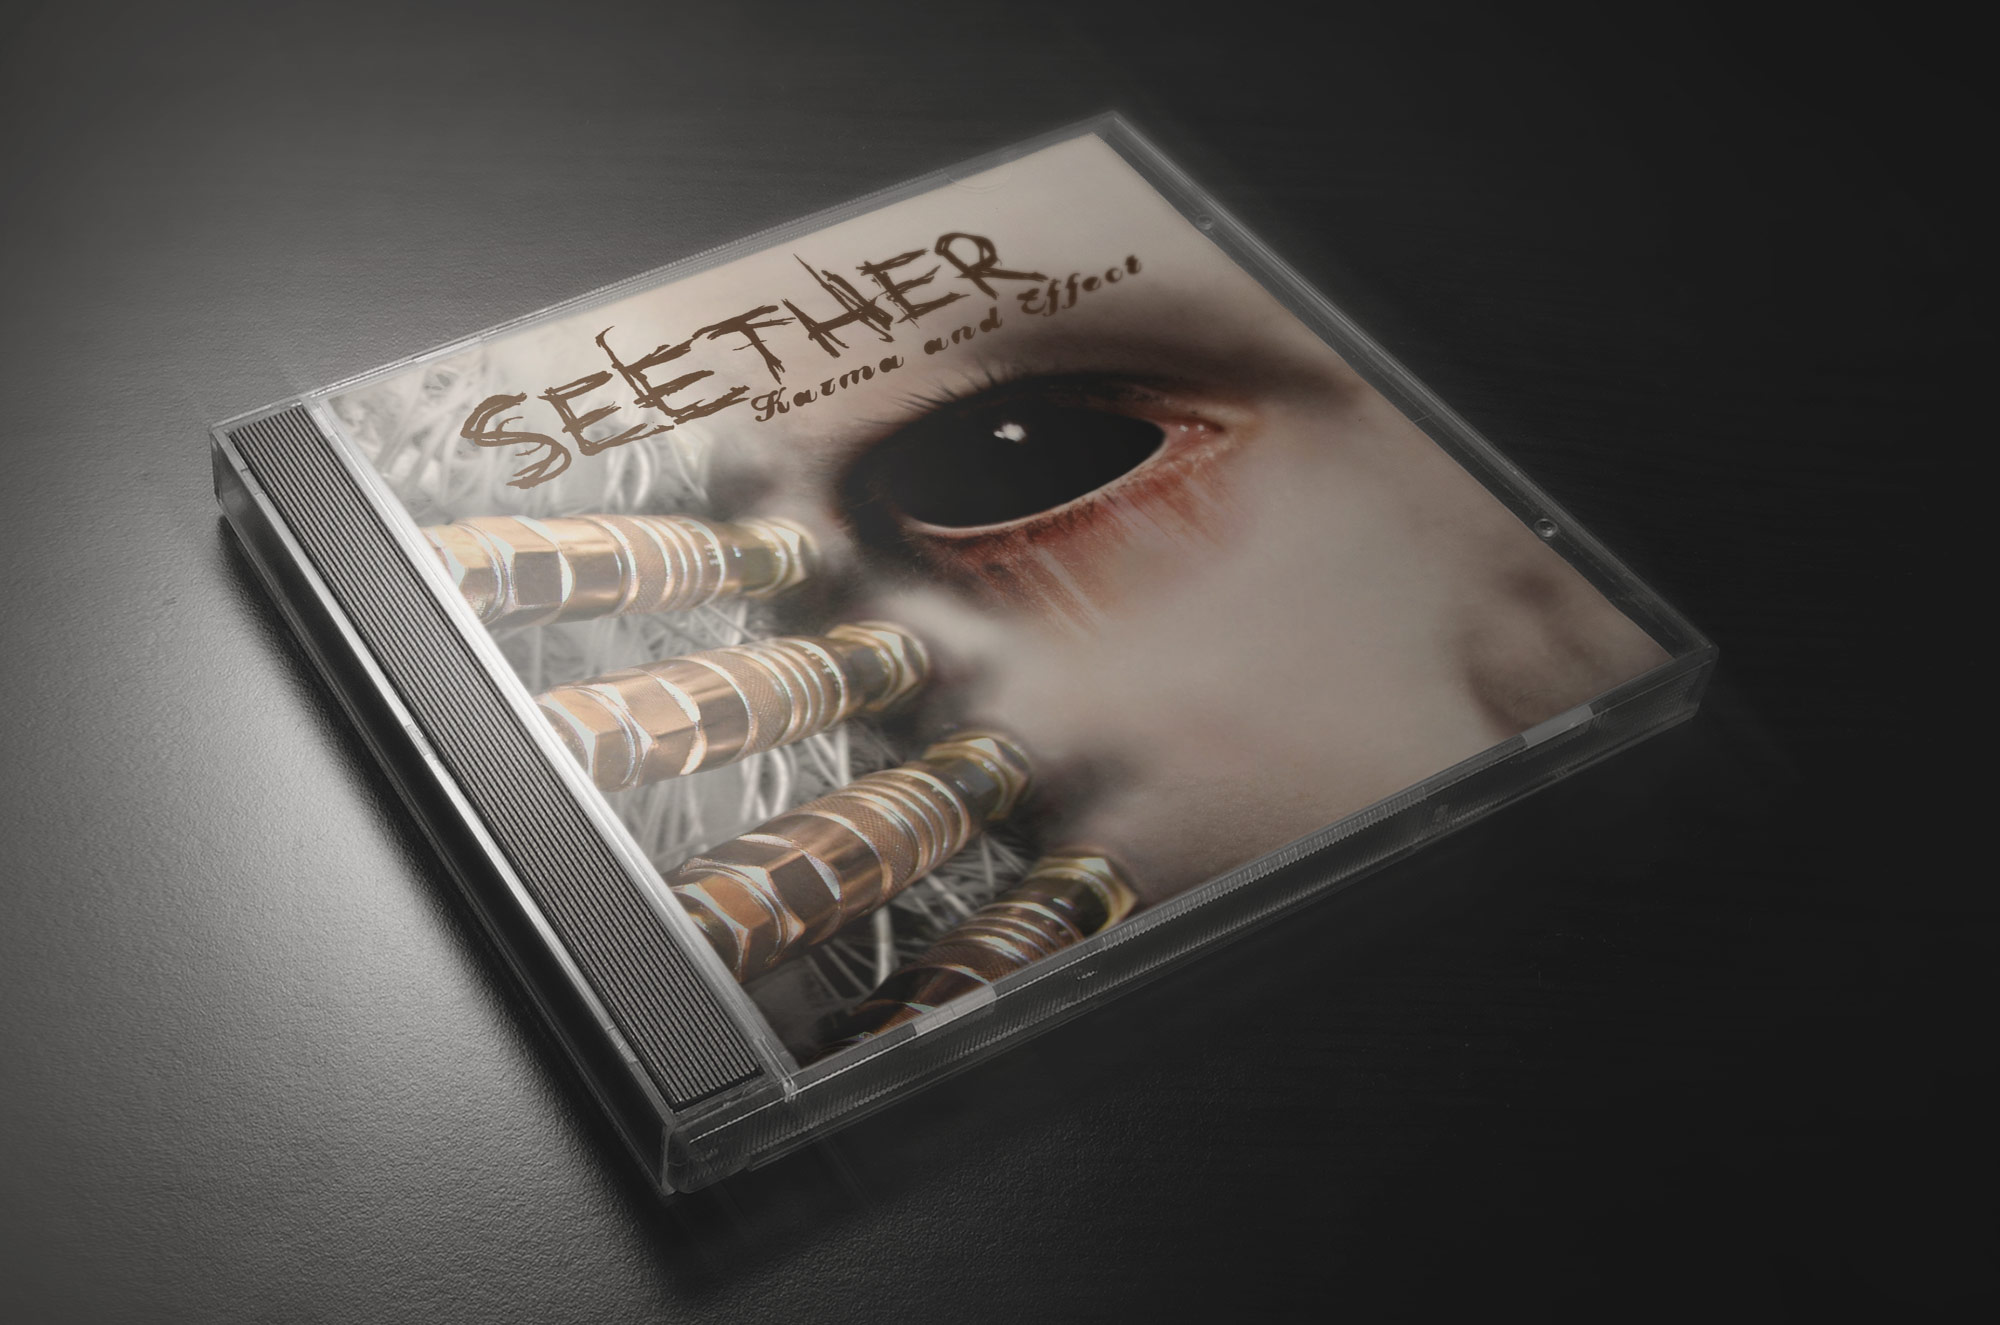 I designed the album cover for Seether's Karma & Effect album